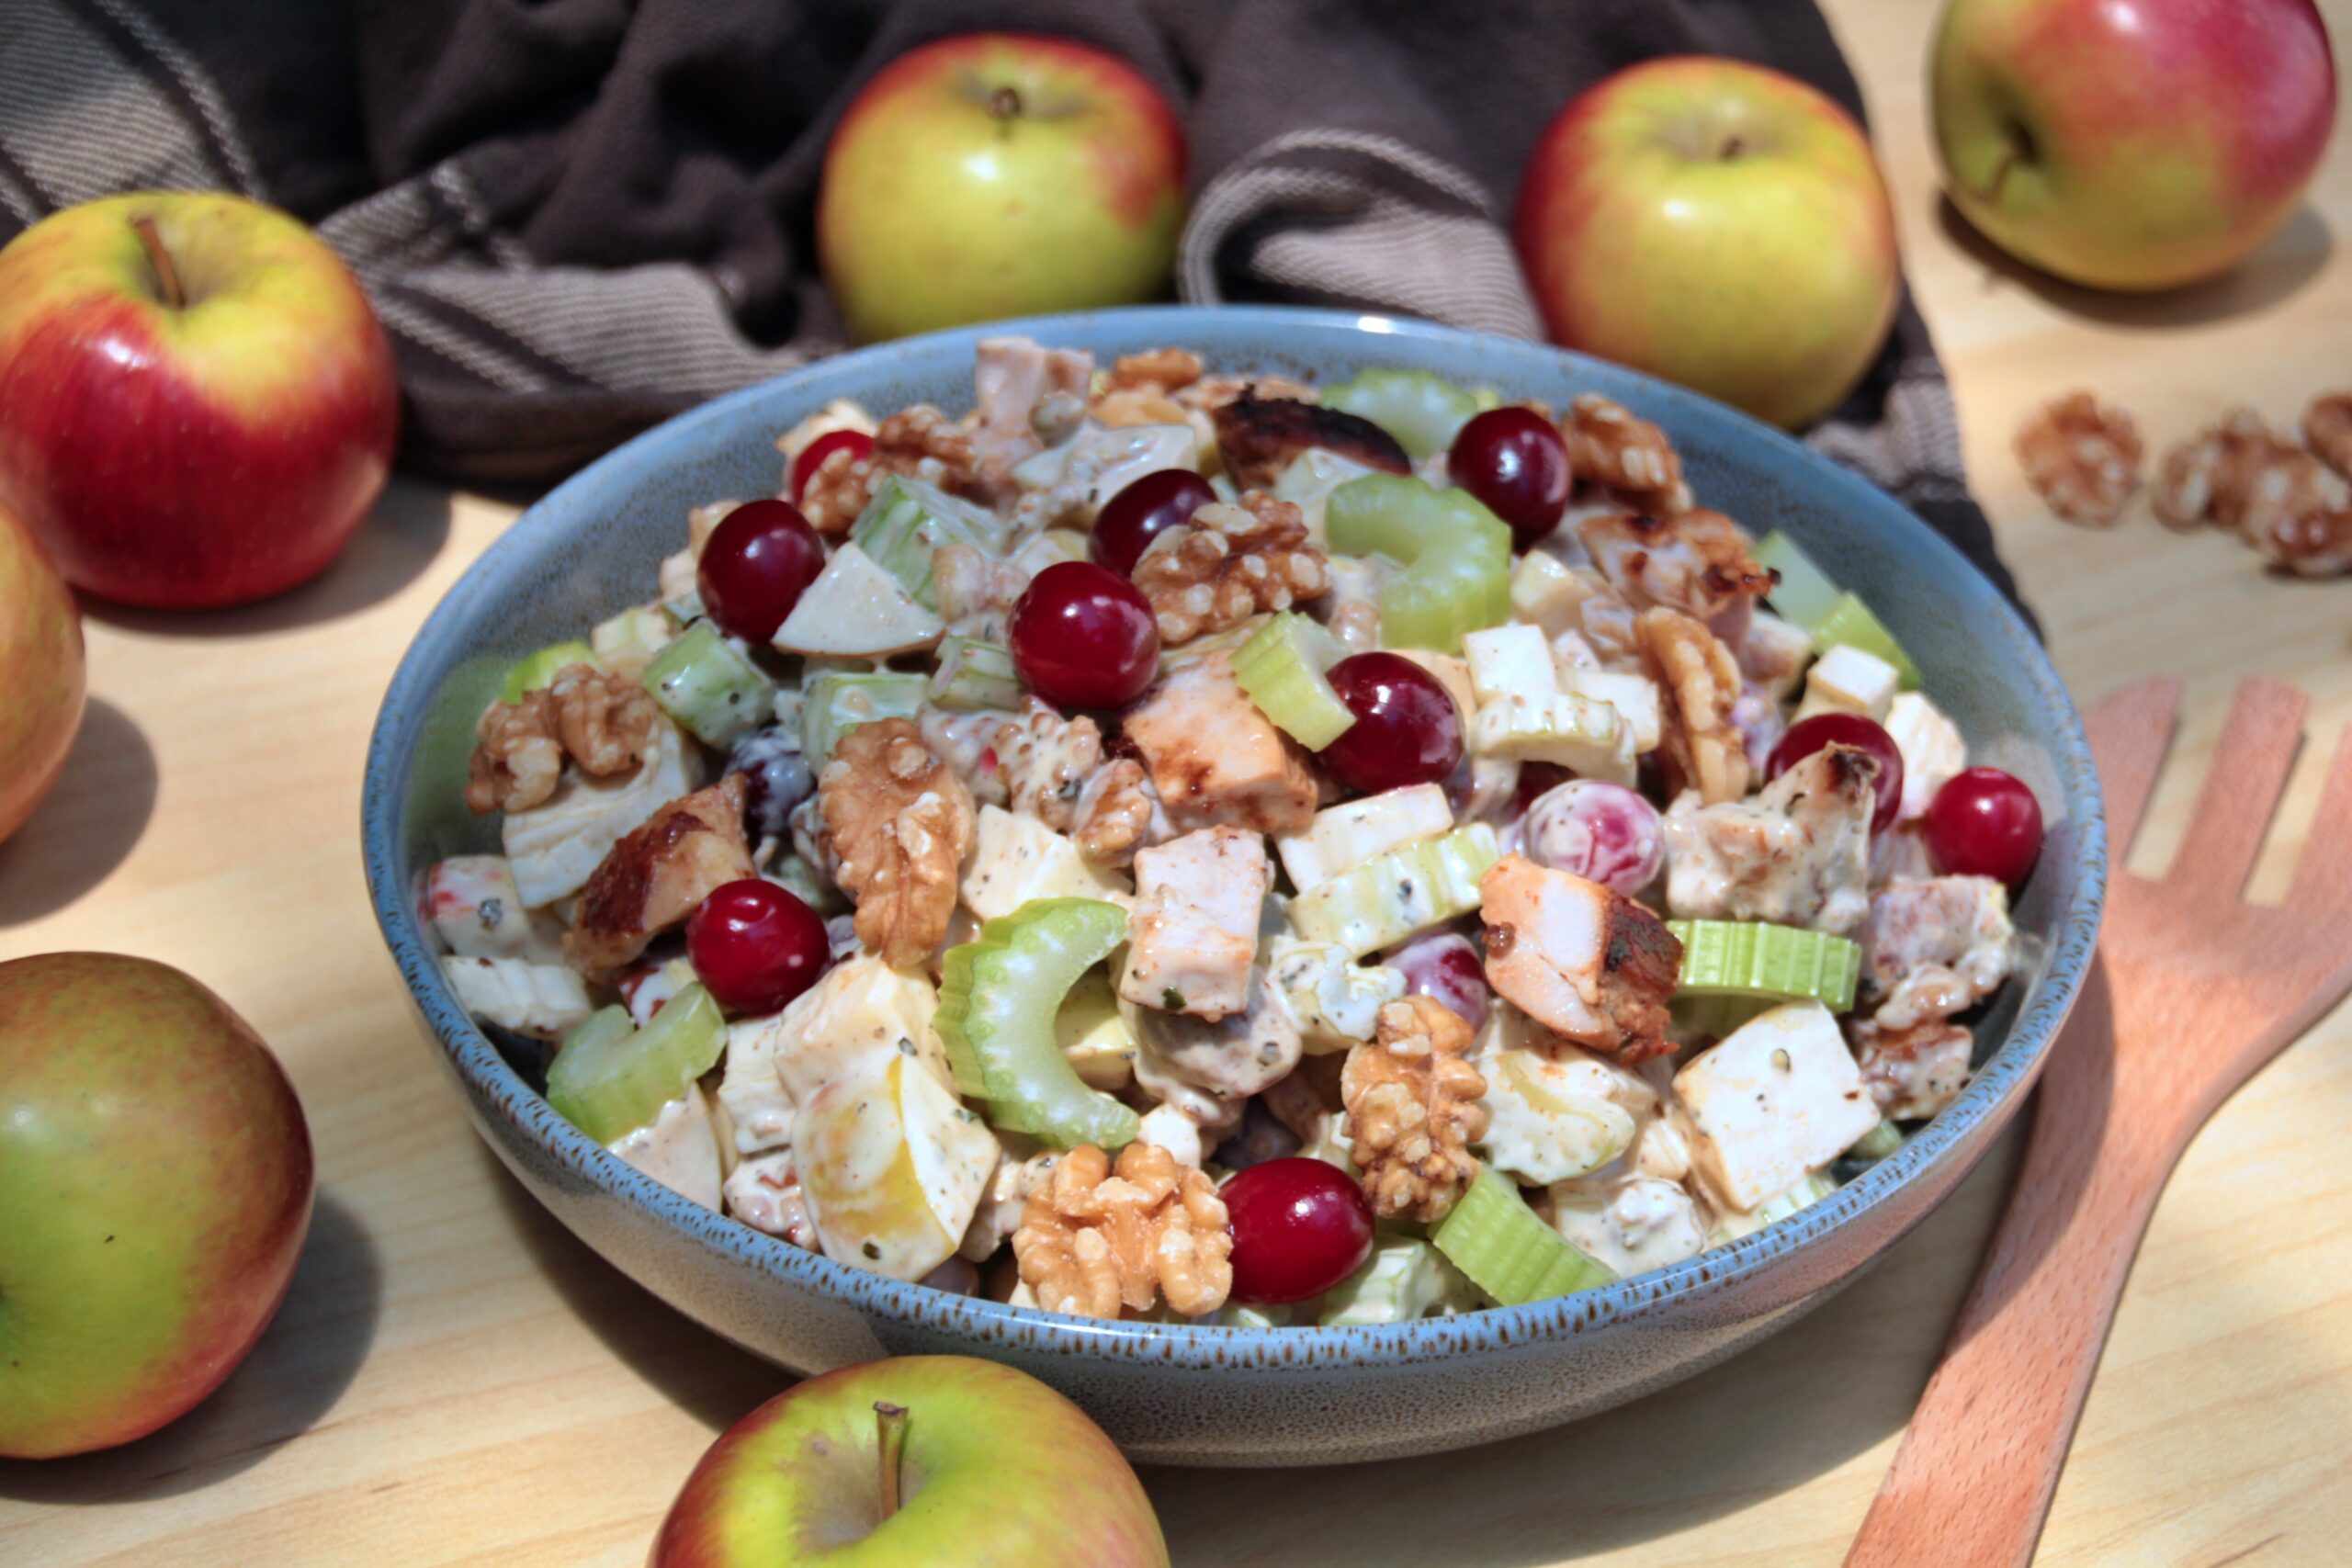 Chicken Salad With Apples And Cranberries (Paleo, Whole30)